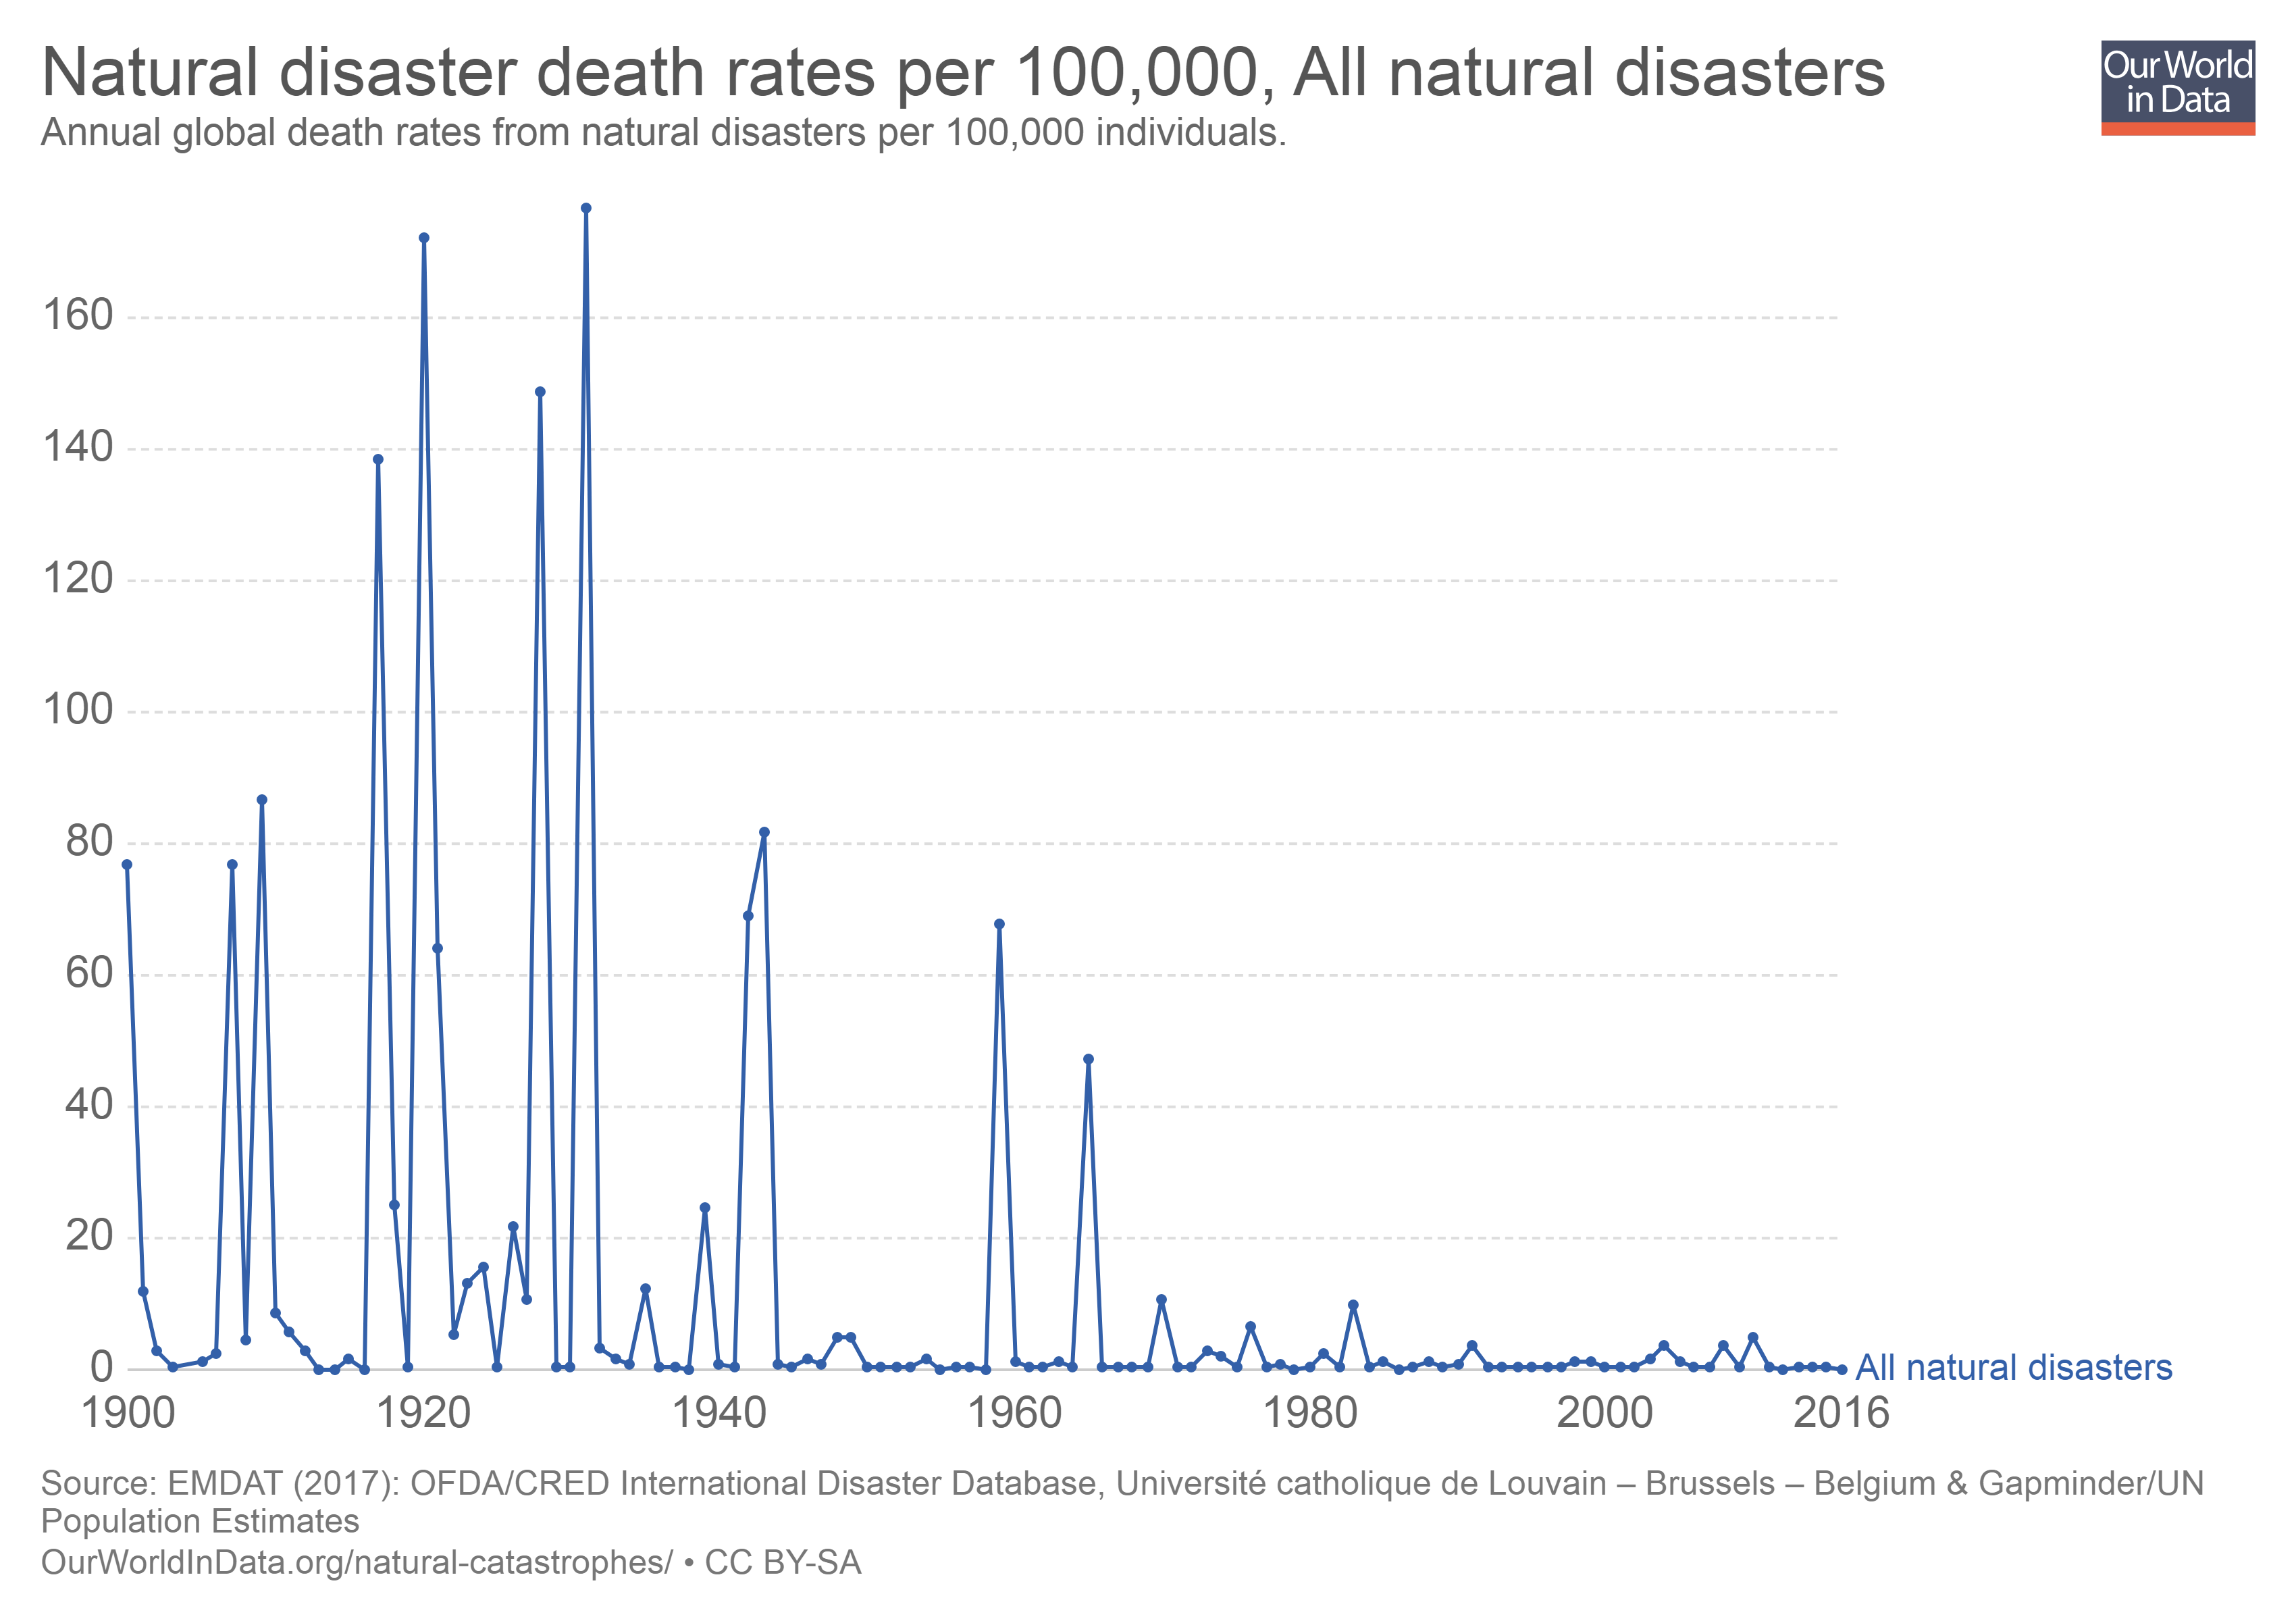 Map showing natural disaster death rates 1900-2016